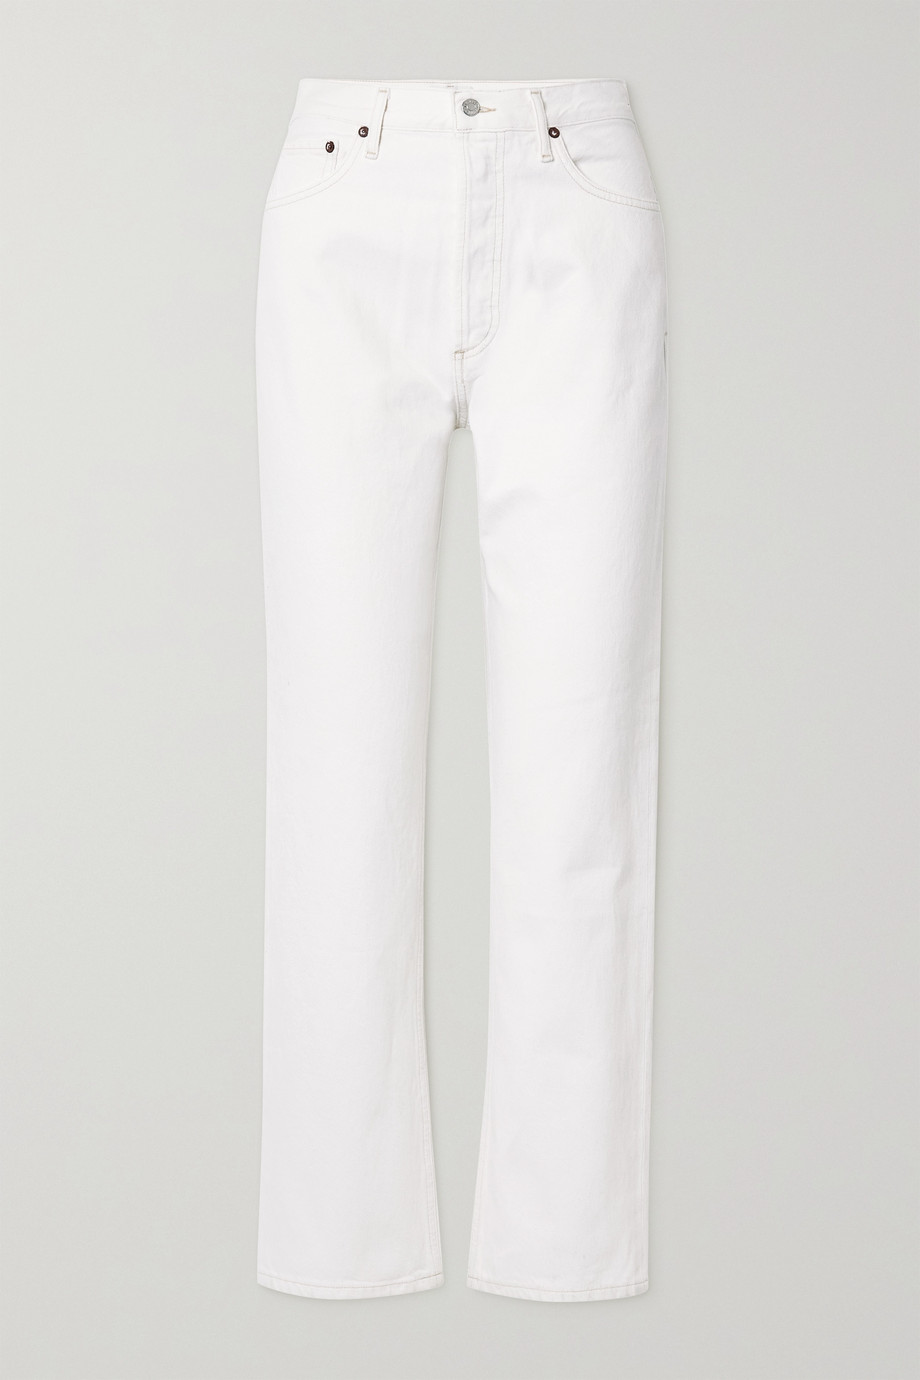 AGOLDE '90s Pinch Waist high-rise straight-leg jeans